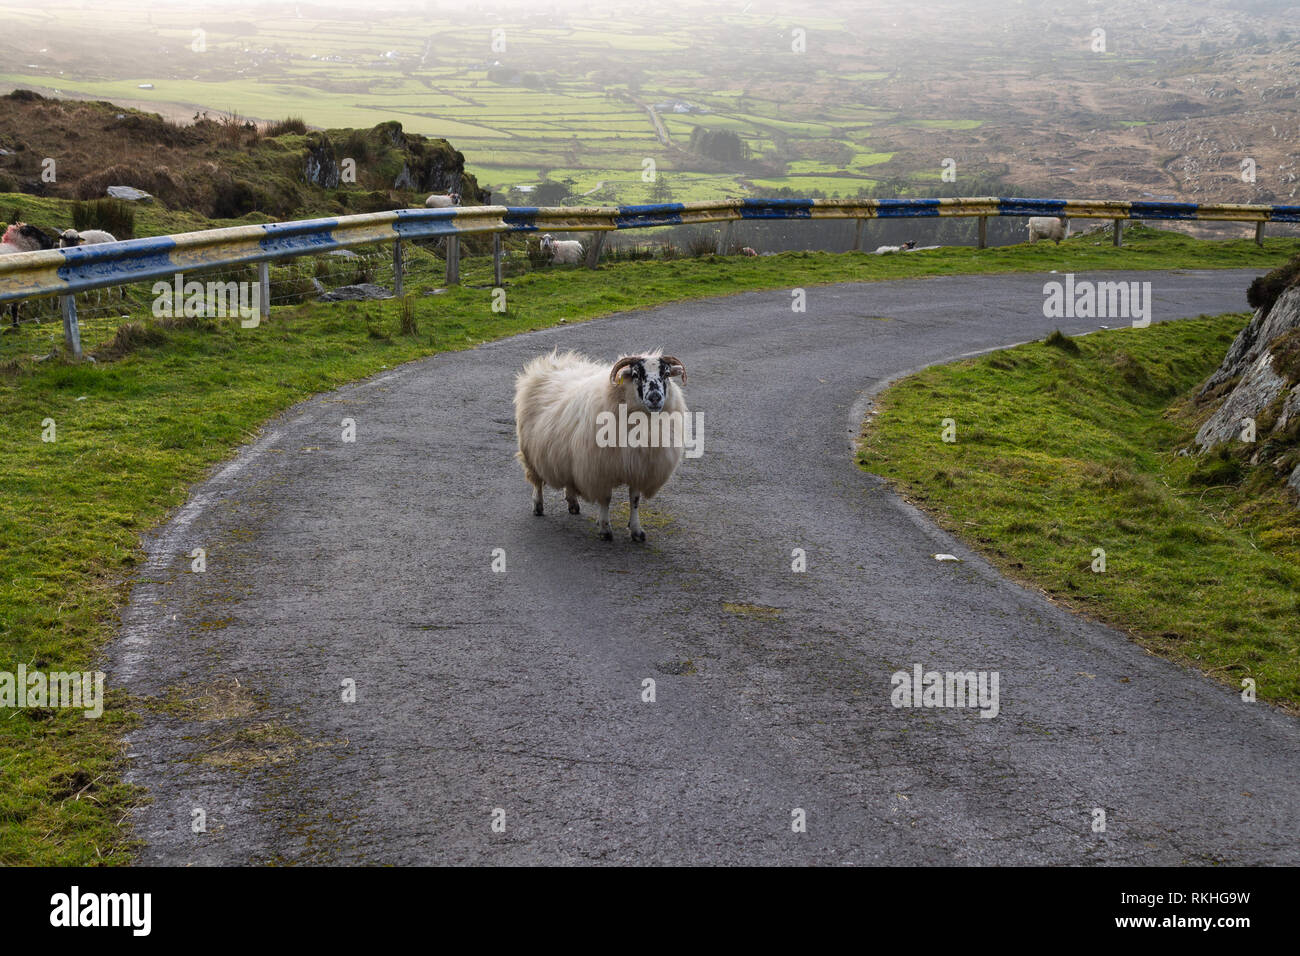 Mixed breed ewe blocking a road on a mountain side in Ireland. - Stock Image